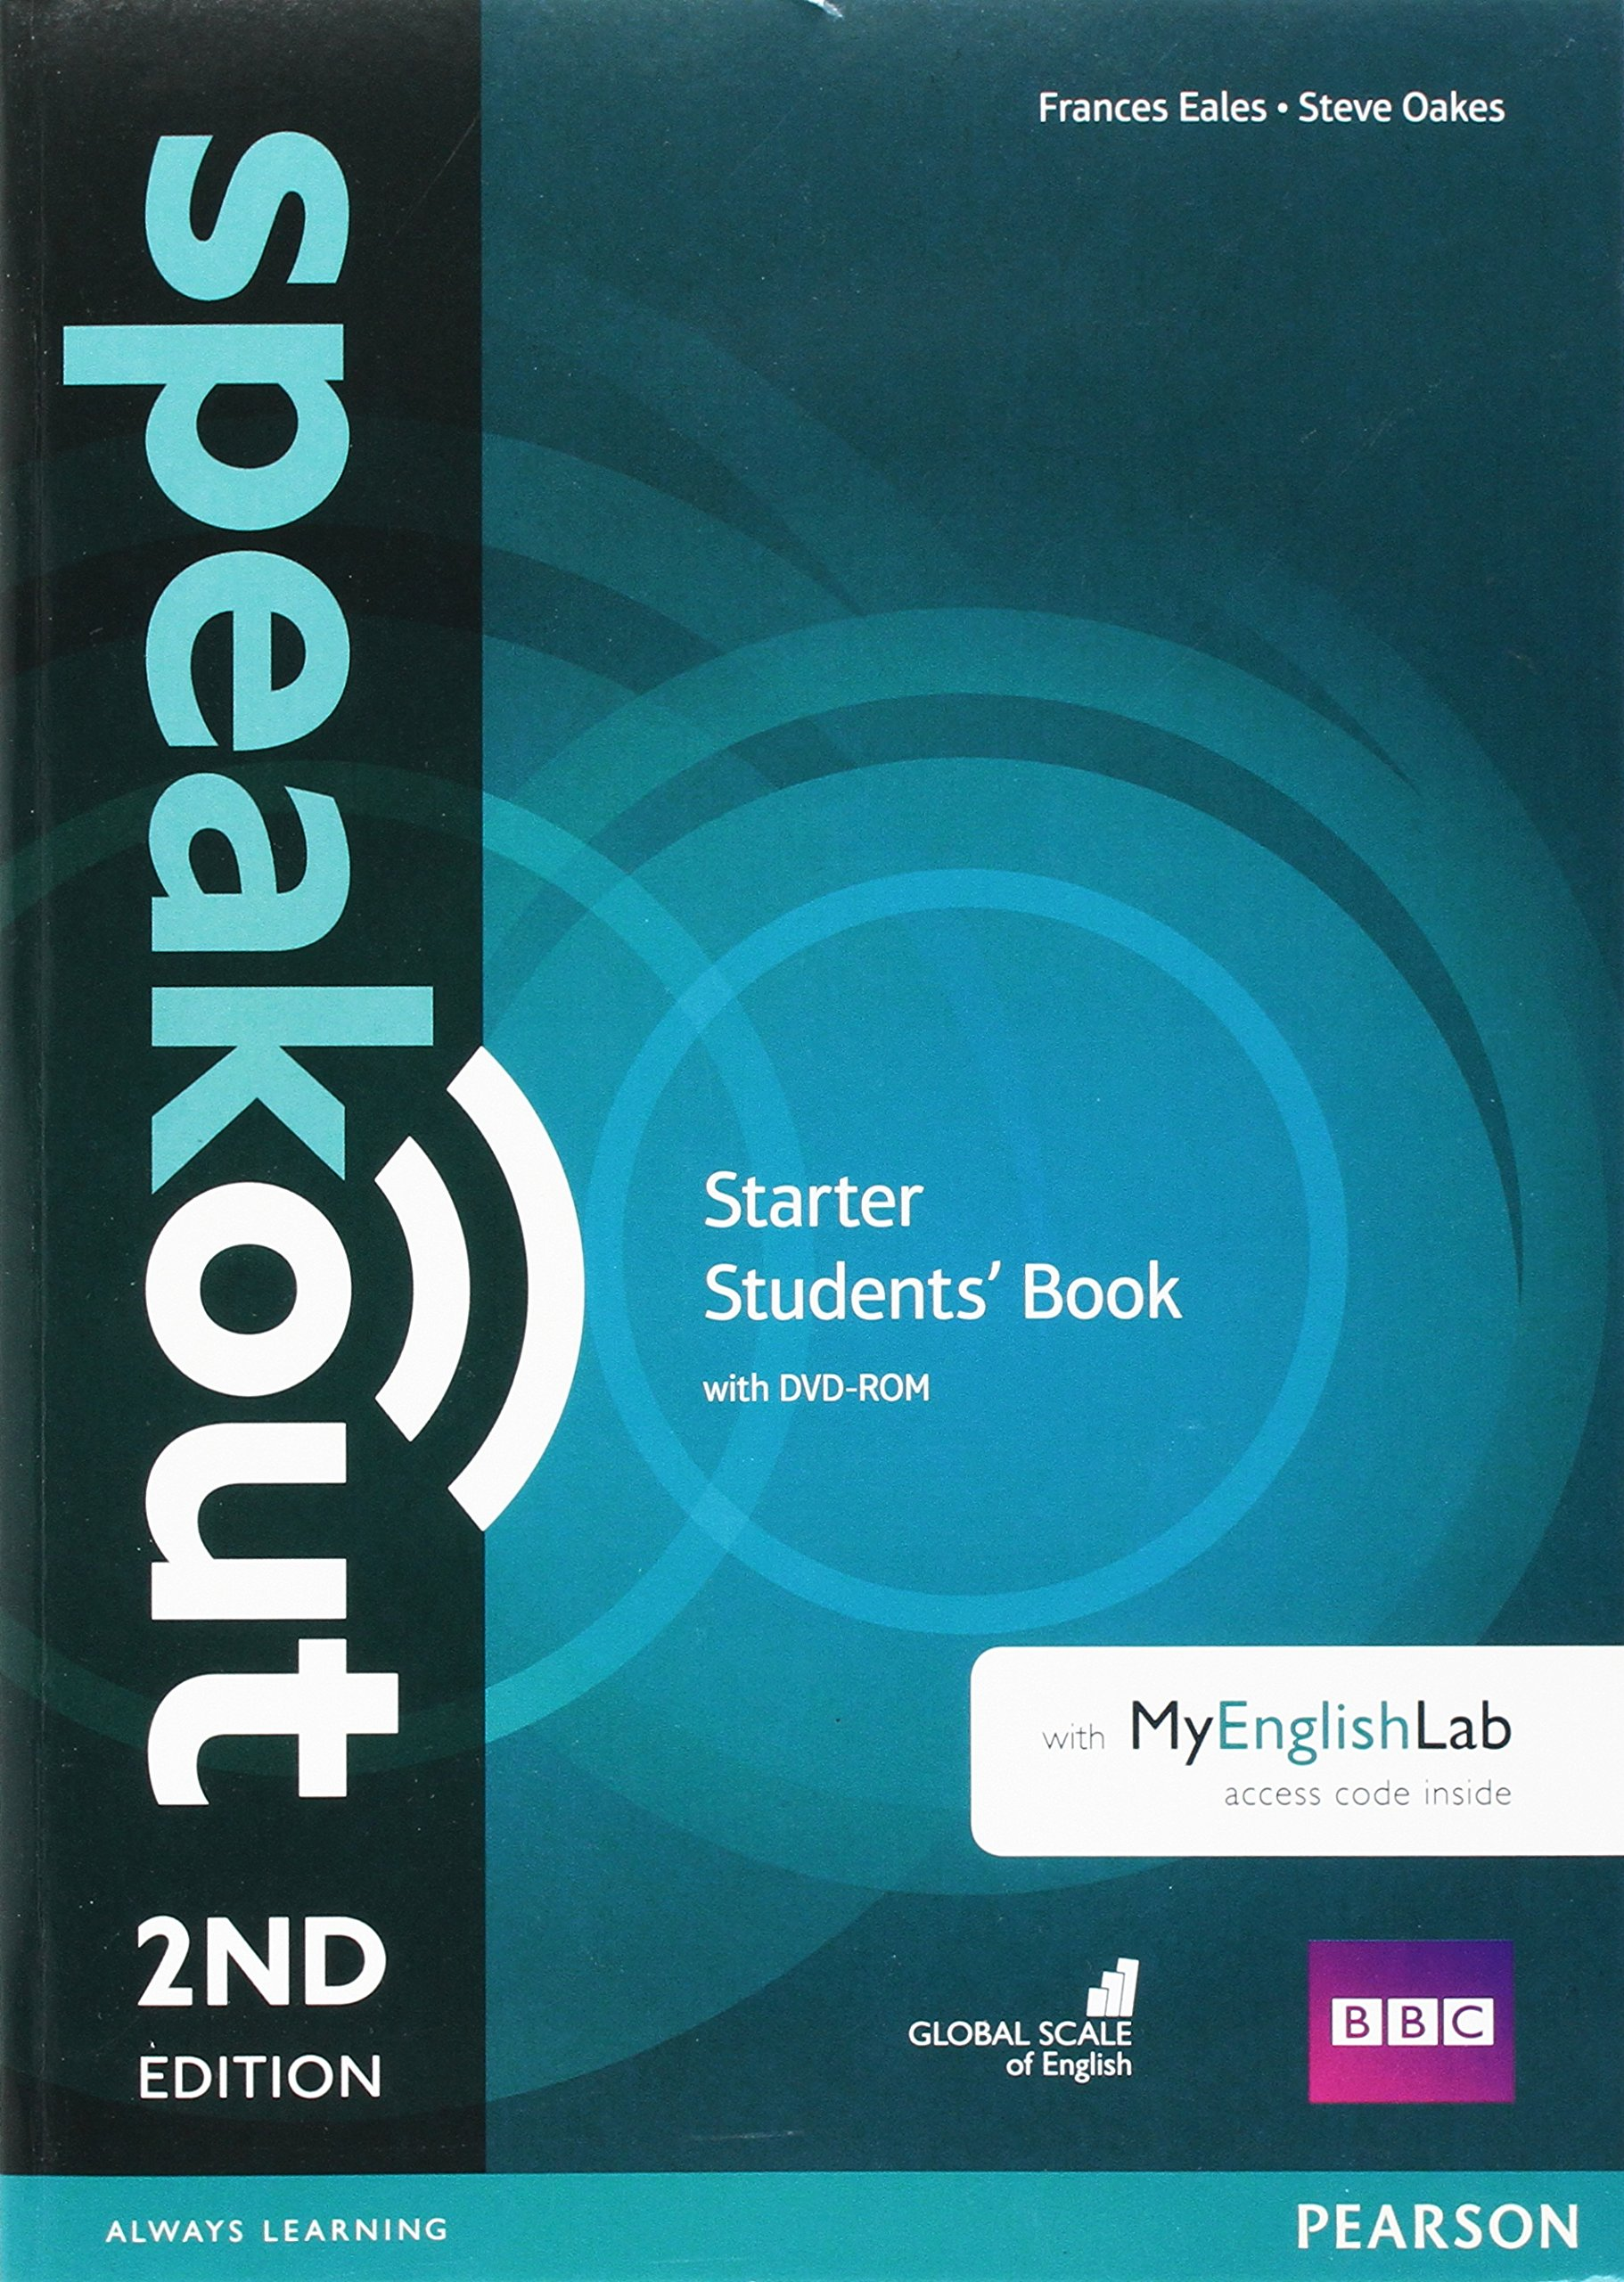 Speakout starter 2nd edition students book with dvd rom and speakout starter 2nd edition students book with dvd rom and myenglishlab access code pack frances eales steve oakes 9781292115993 amazon books fandeluxe Image collections